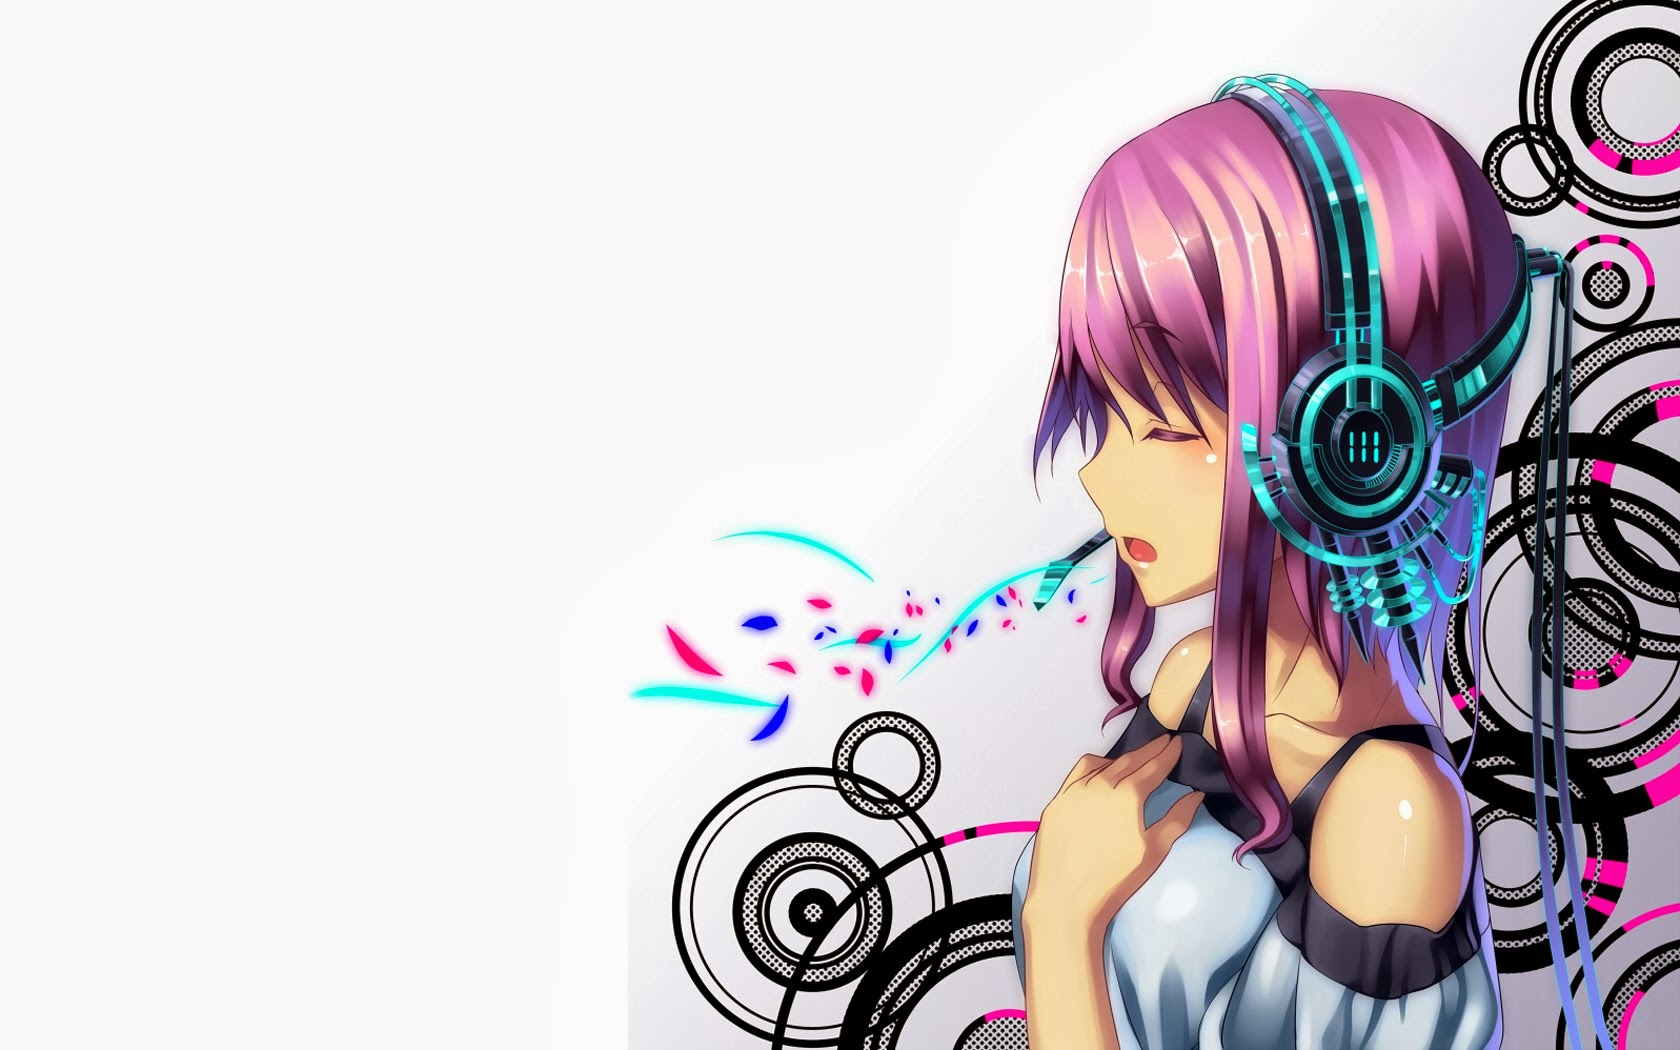 Free Download Anime Girl Abstract Headphone Hd Wallpaper 1680x1050 1680x1050 For Your Desktop Mobile Tablet Explore 48 Cute Anime Girls Hd Wallpaper Cute Anime Wallpaper 1920x1080 Cute Anime Cat